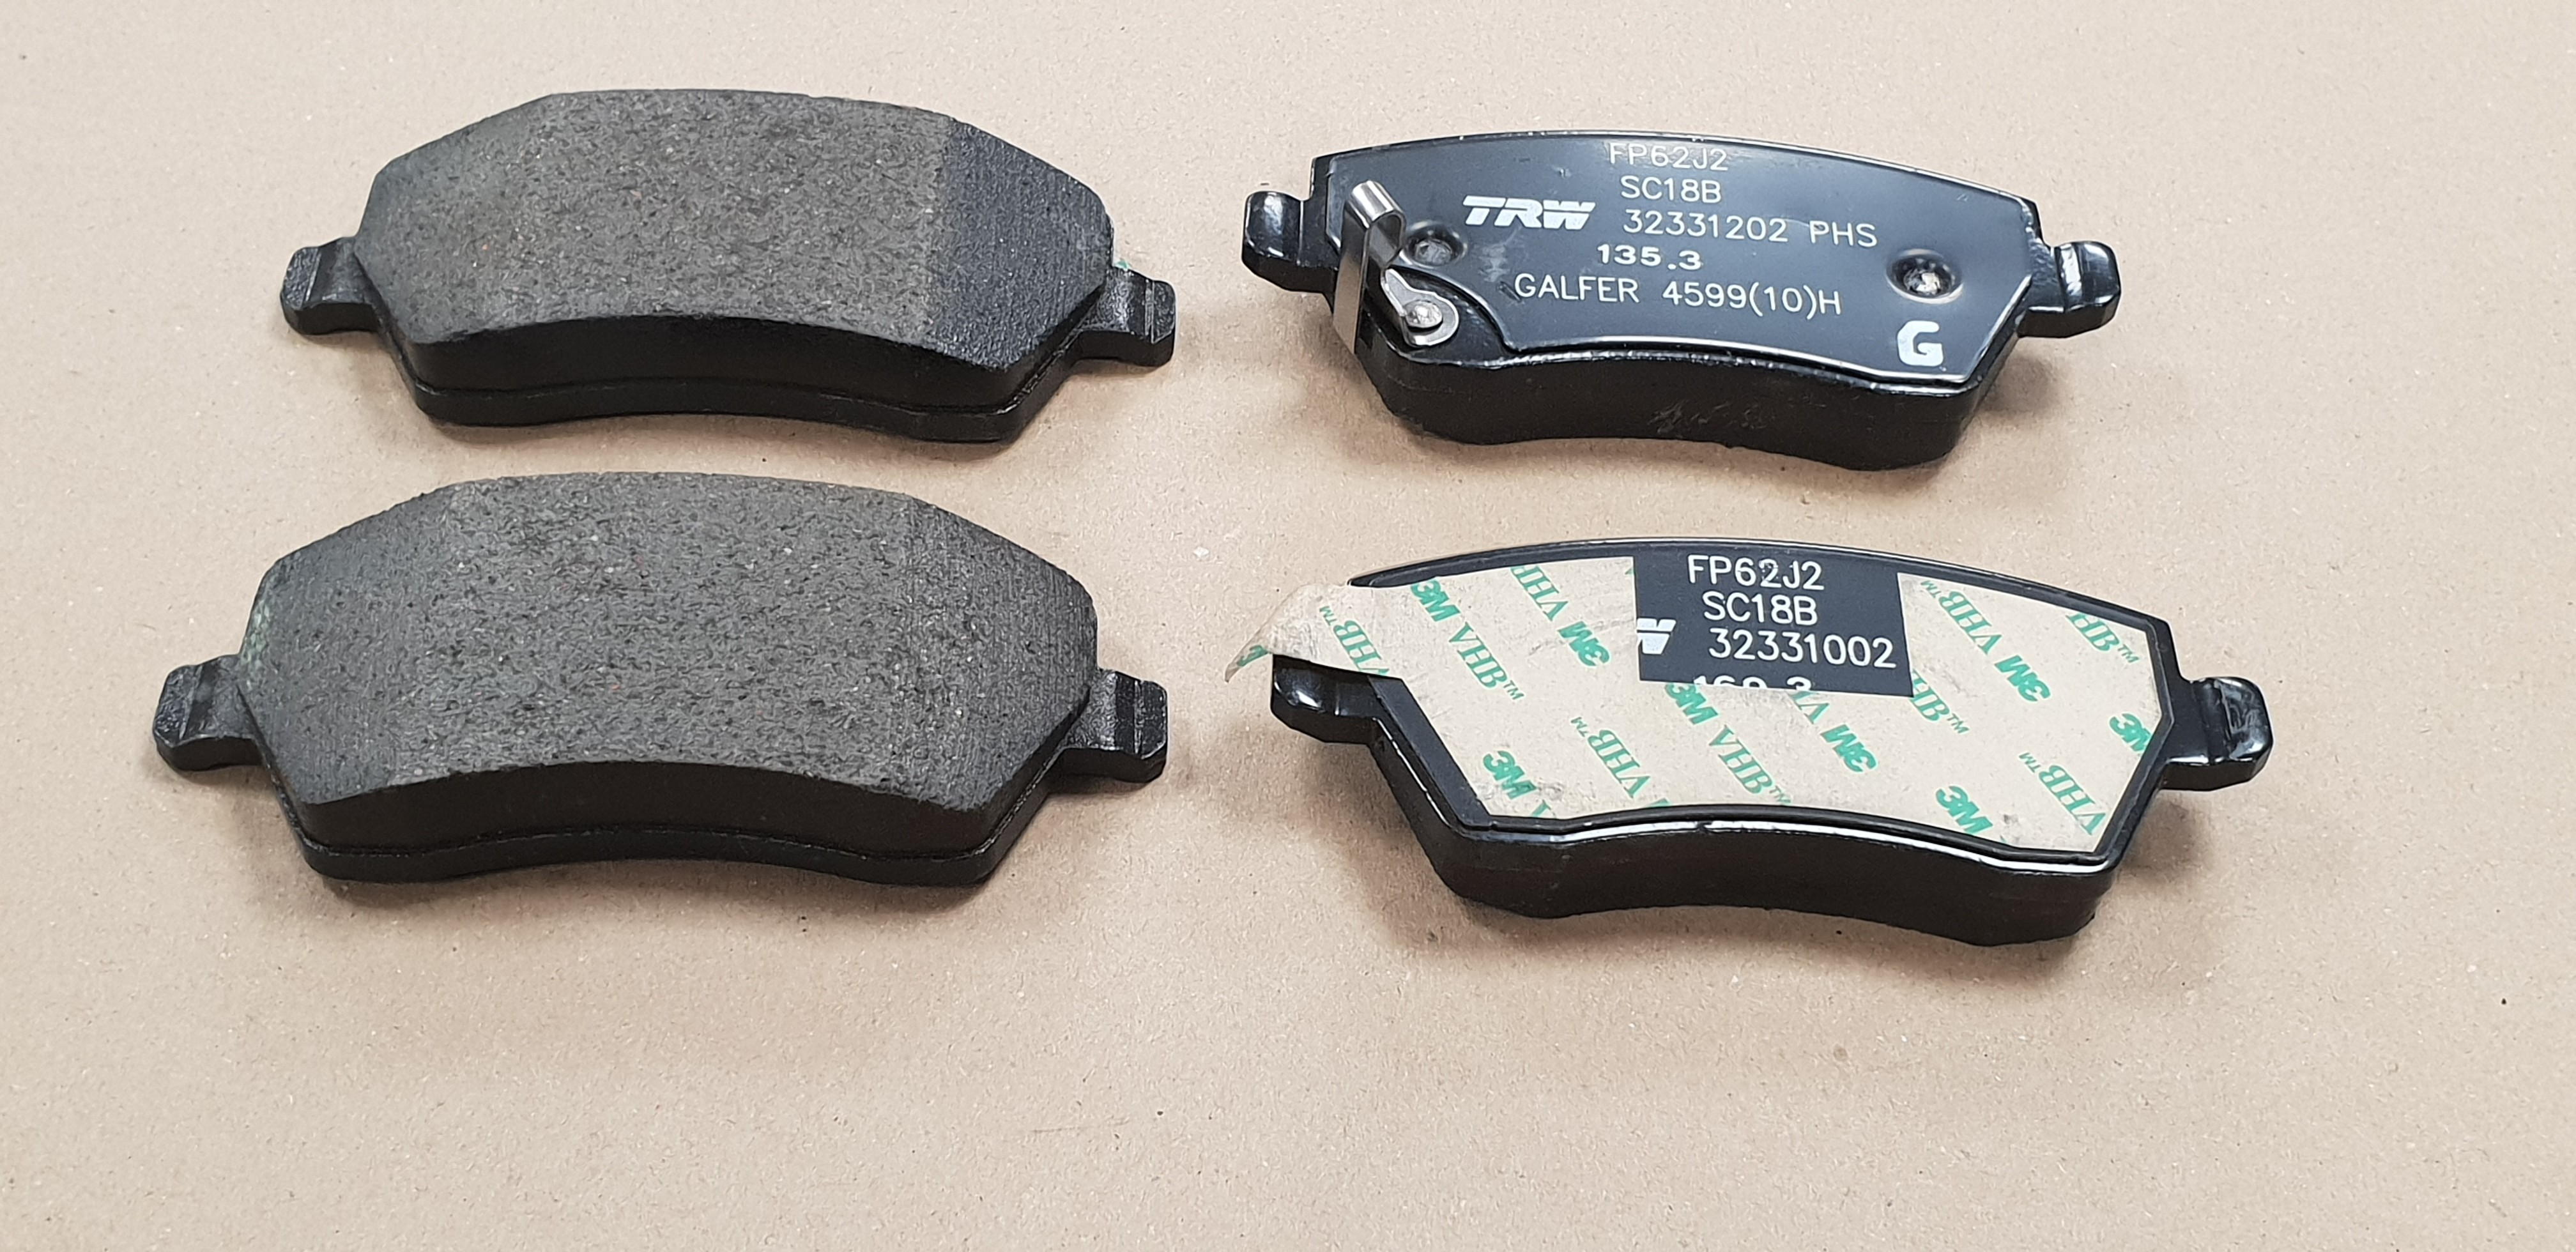 FRONT BRAKE PADS FIT VAUXHALL AGILA 08 SUZUKI SPLASH 08  SWIFT 05 VAUXHALL AGILA